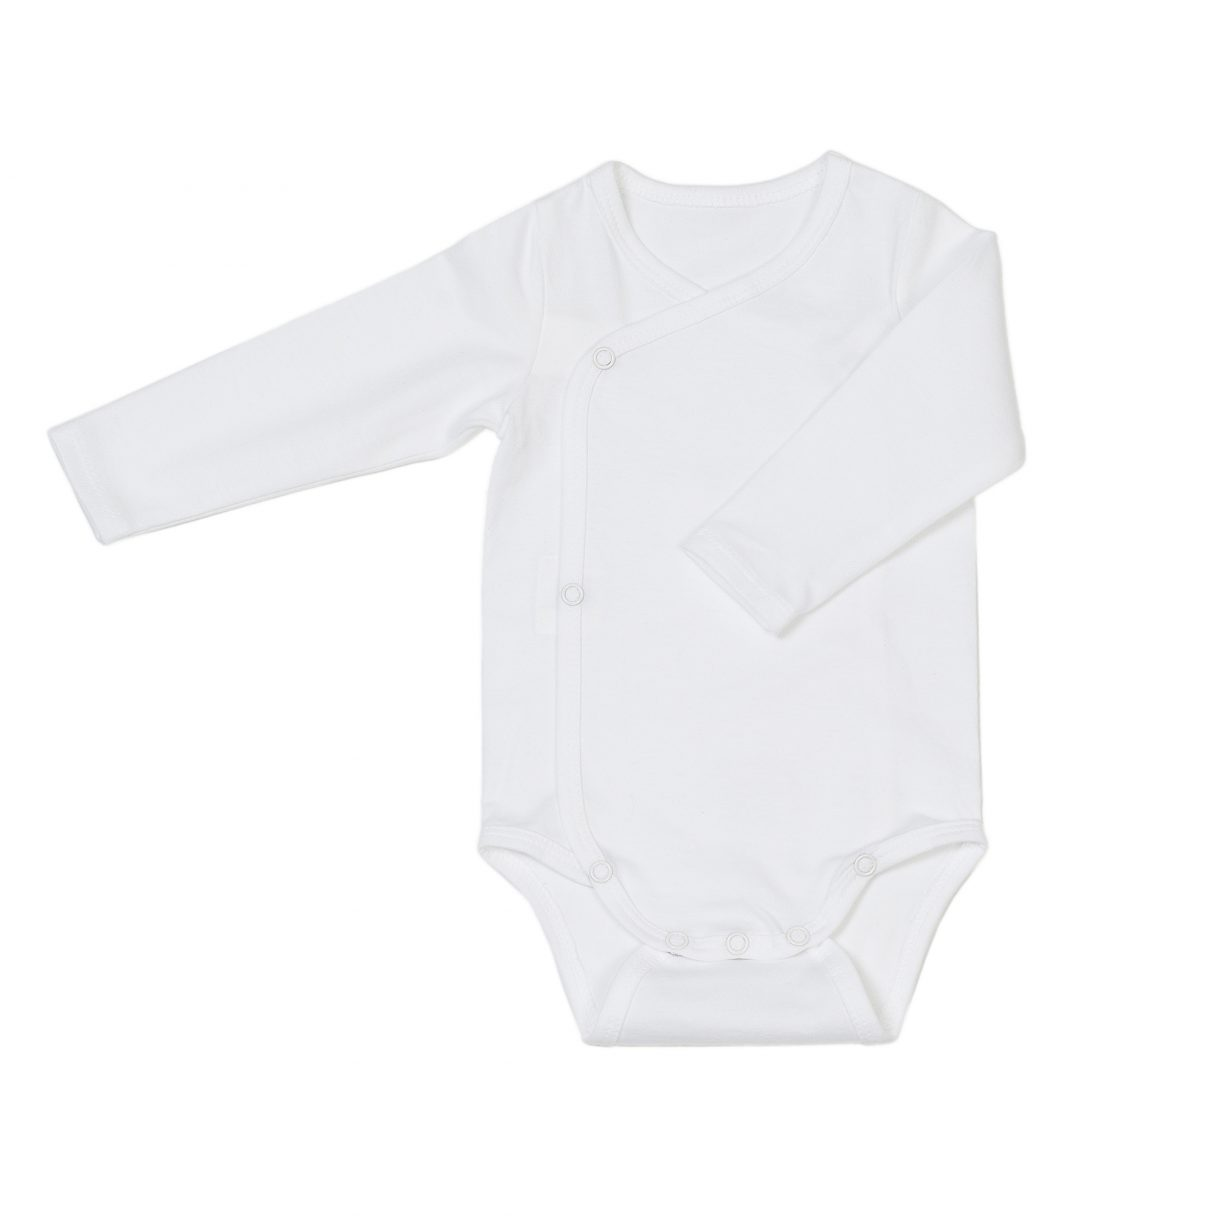 Newborn organic cotton baby bodysuit white